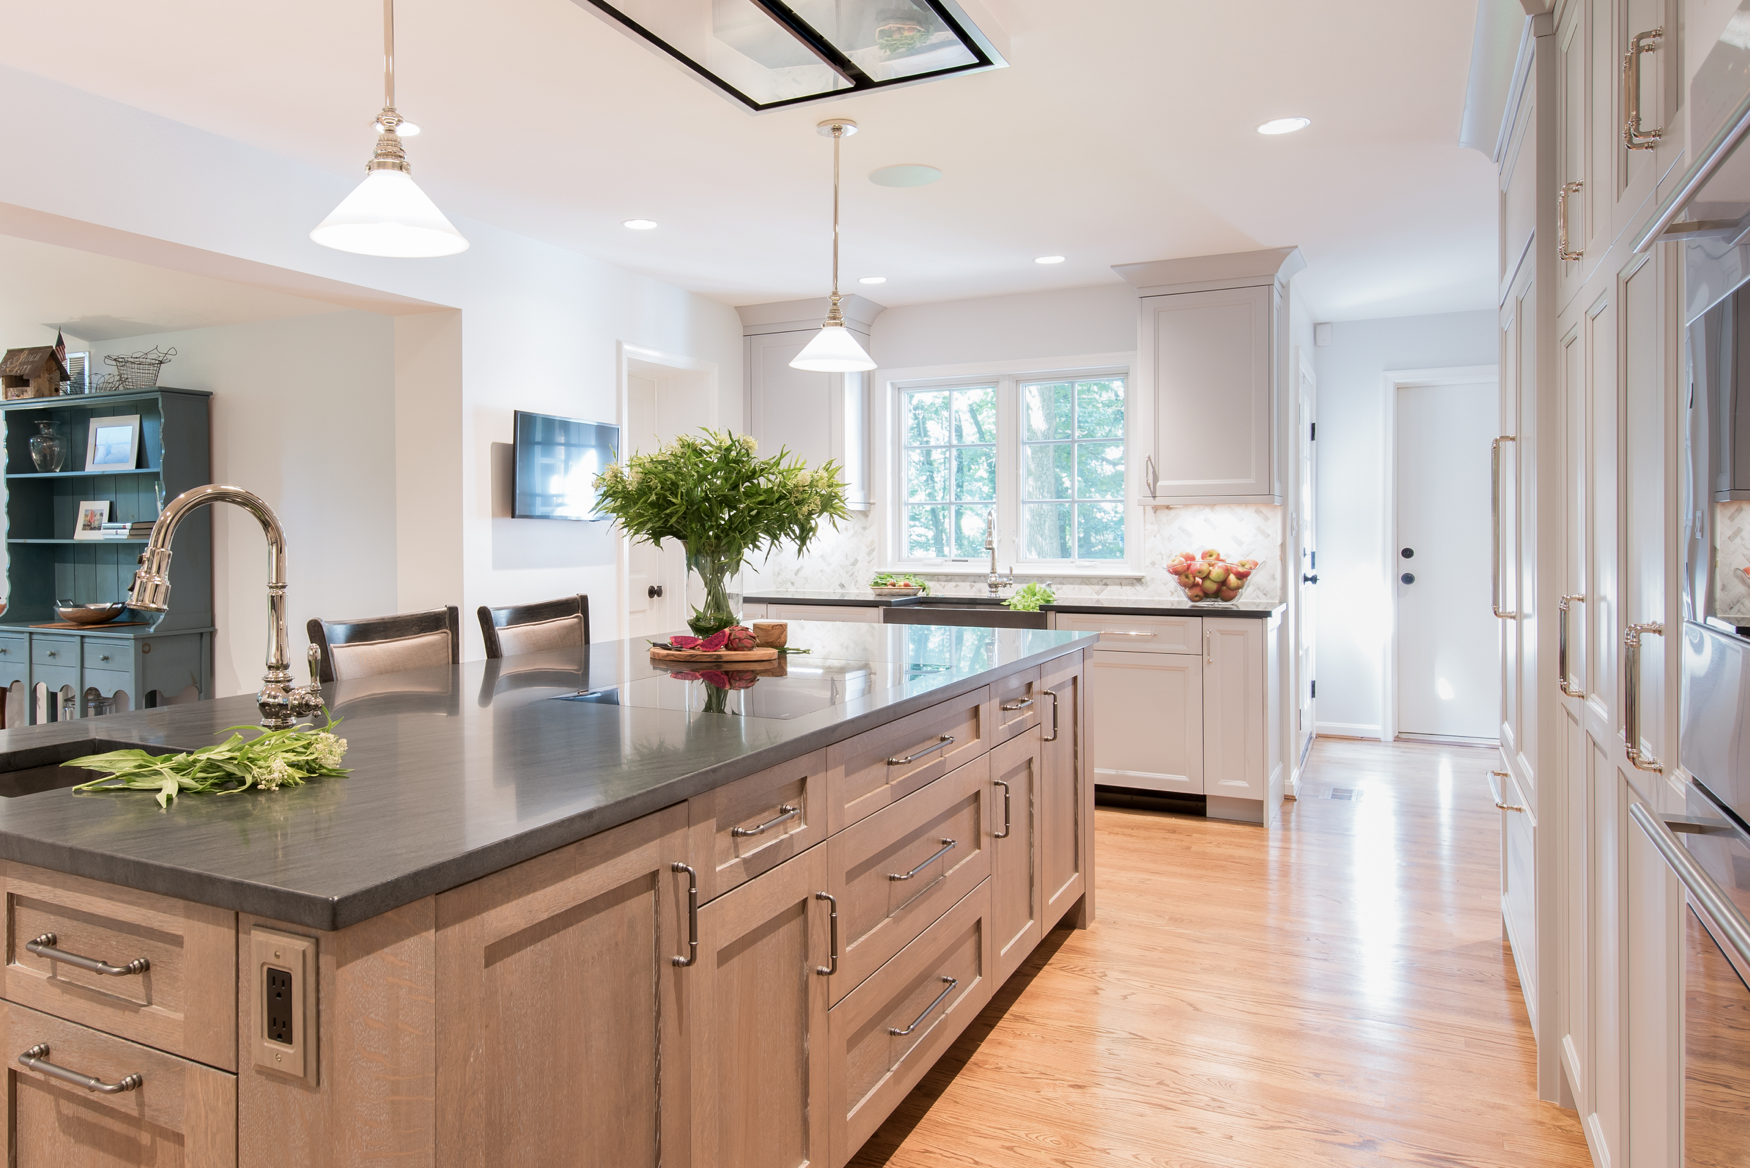 Angled View of Kitchen Island